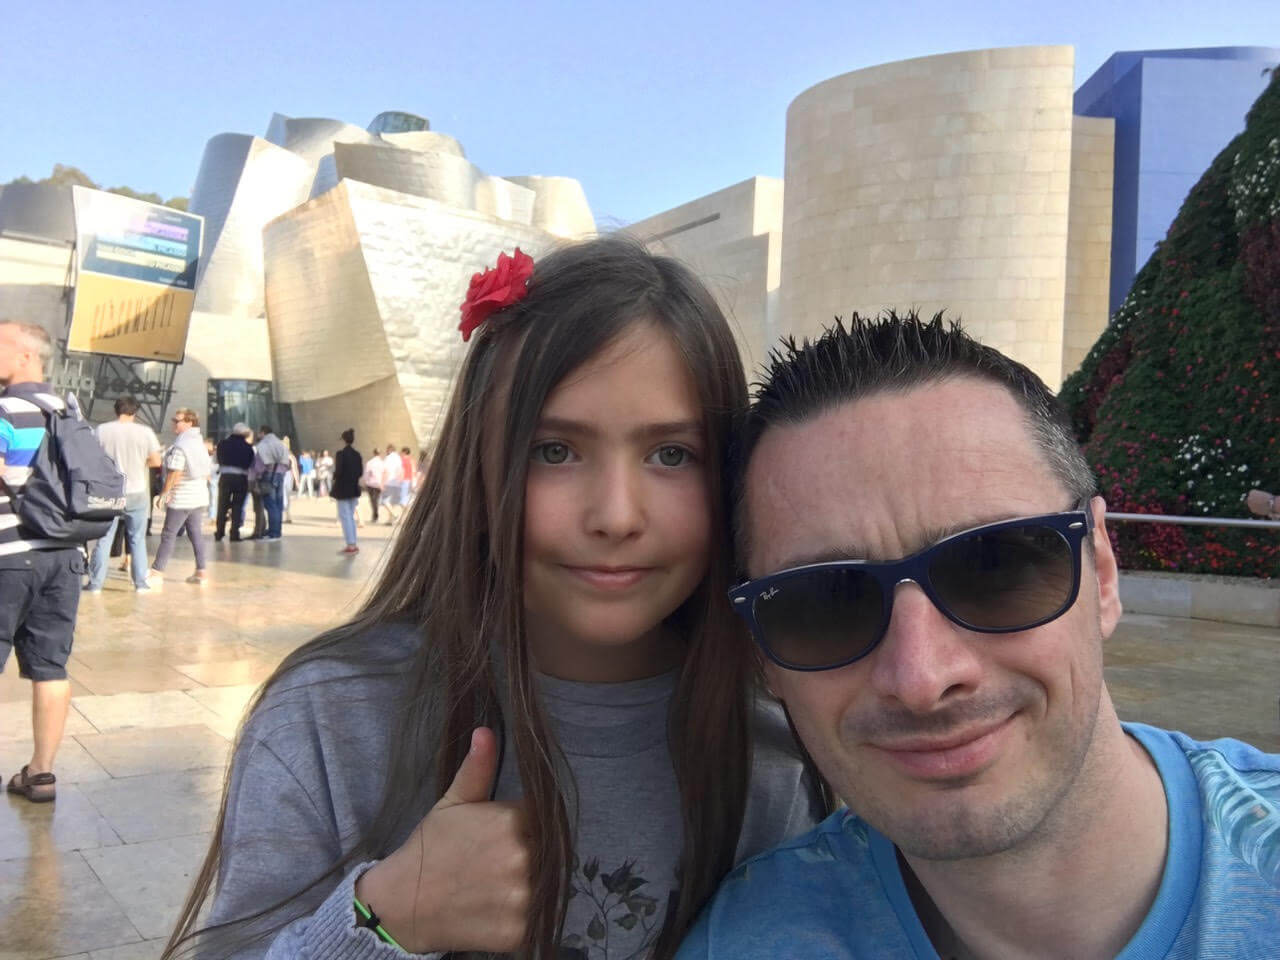 Steve and his daughter outside the Guggenheim, Bilbao.